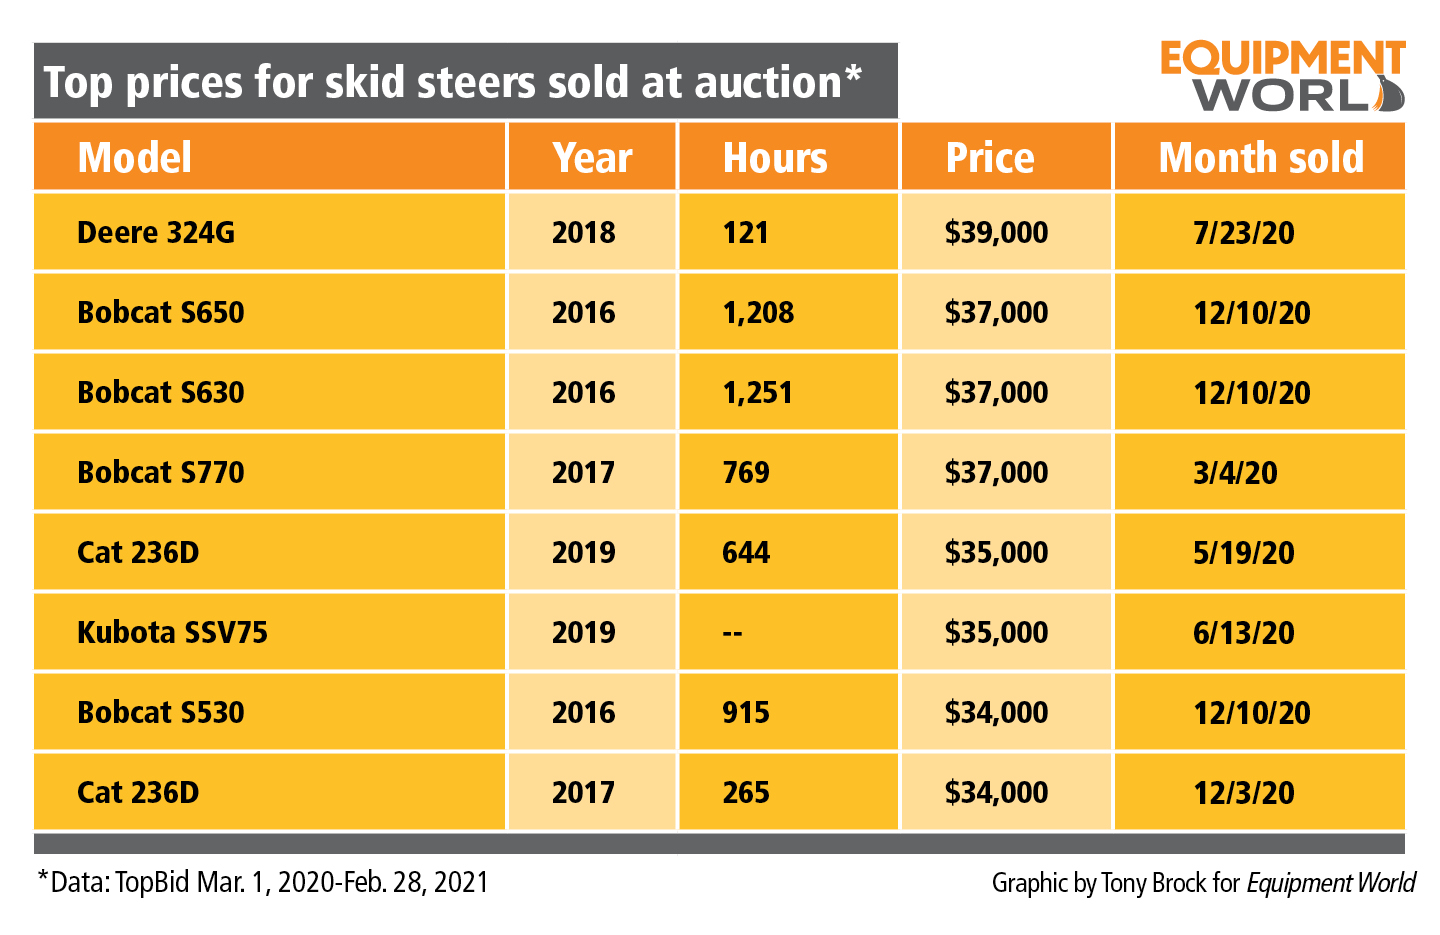 top prices for skid steers sold at auction chart